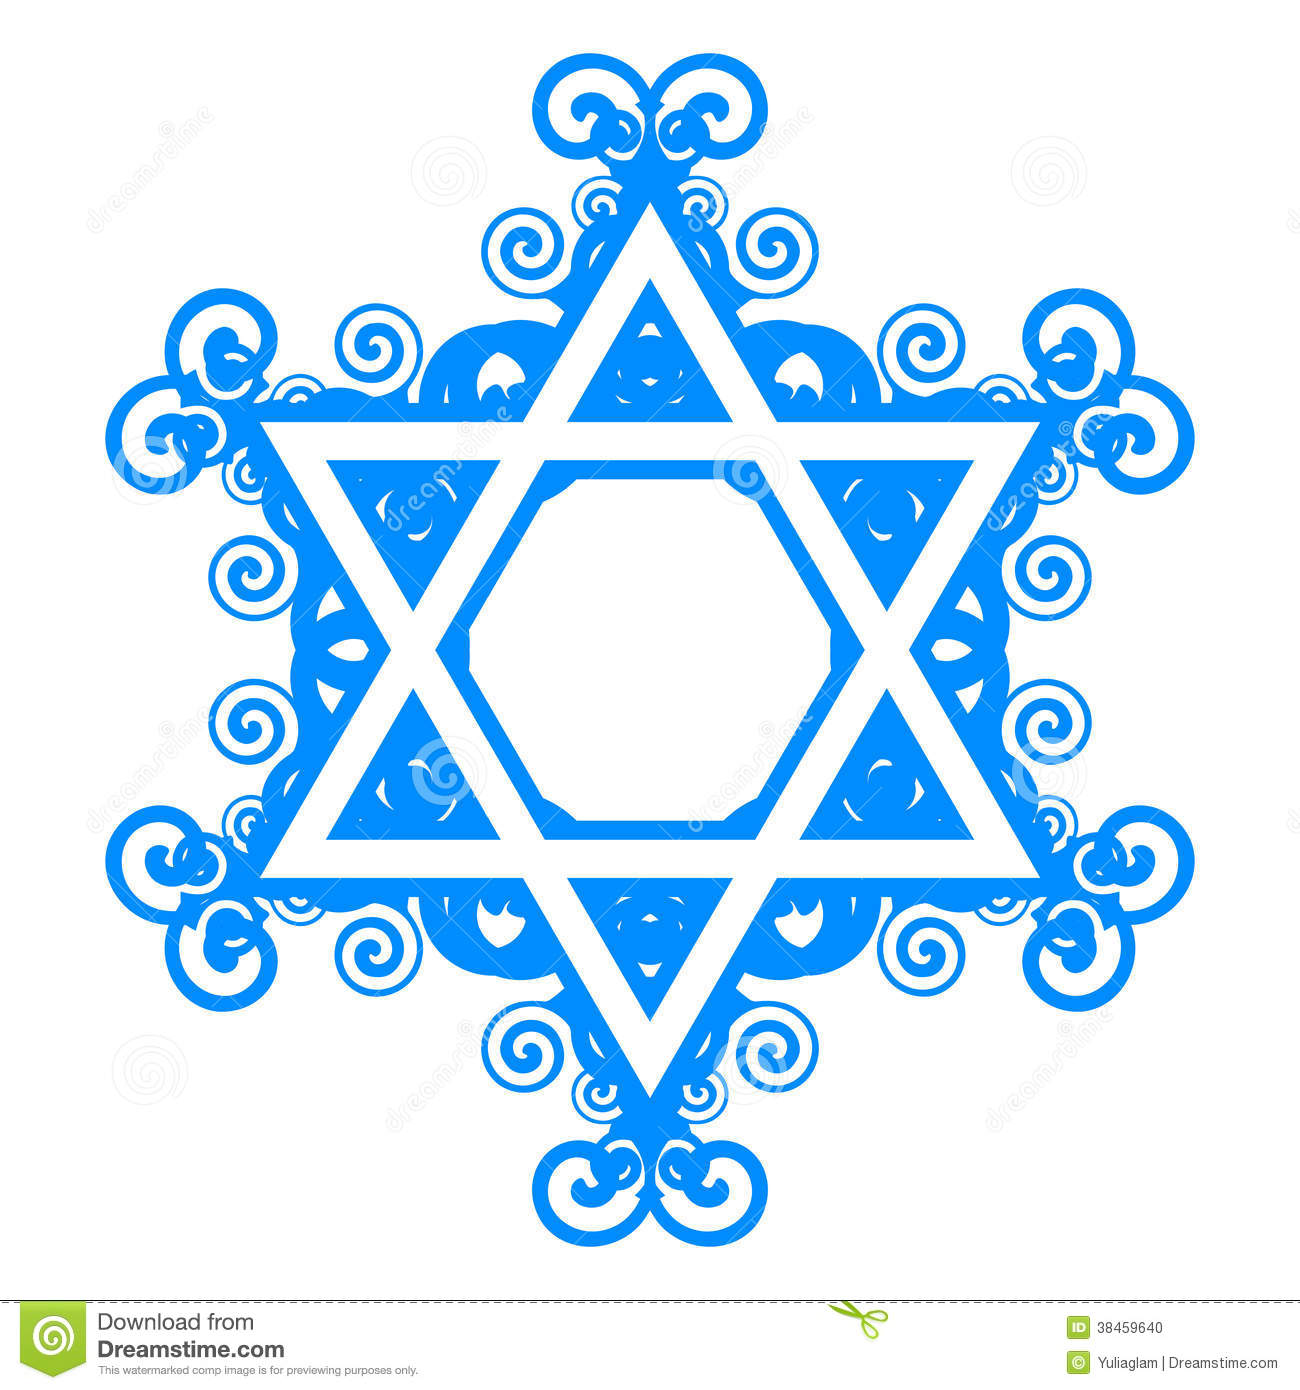 Star of David with floral decorations